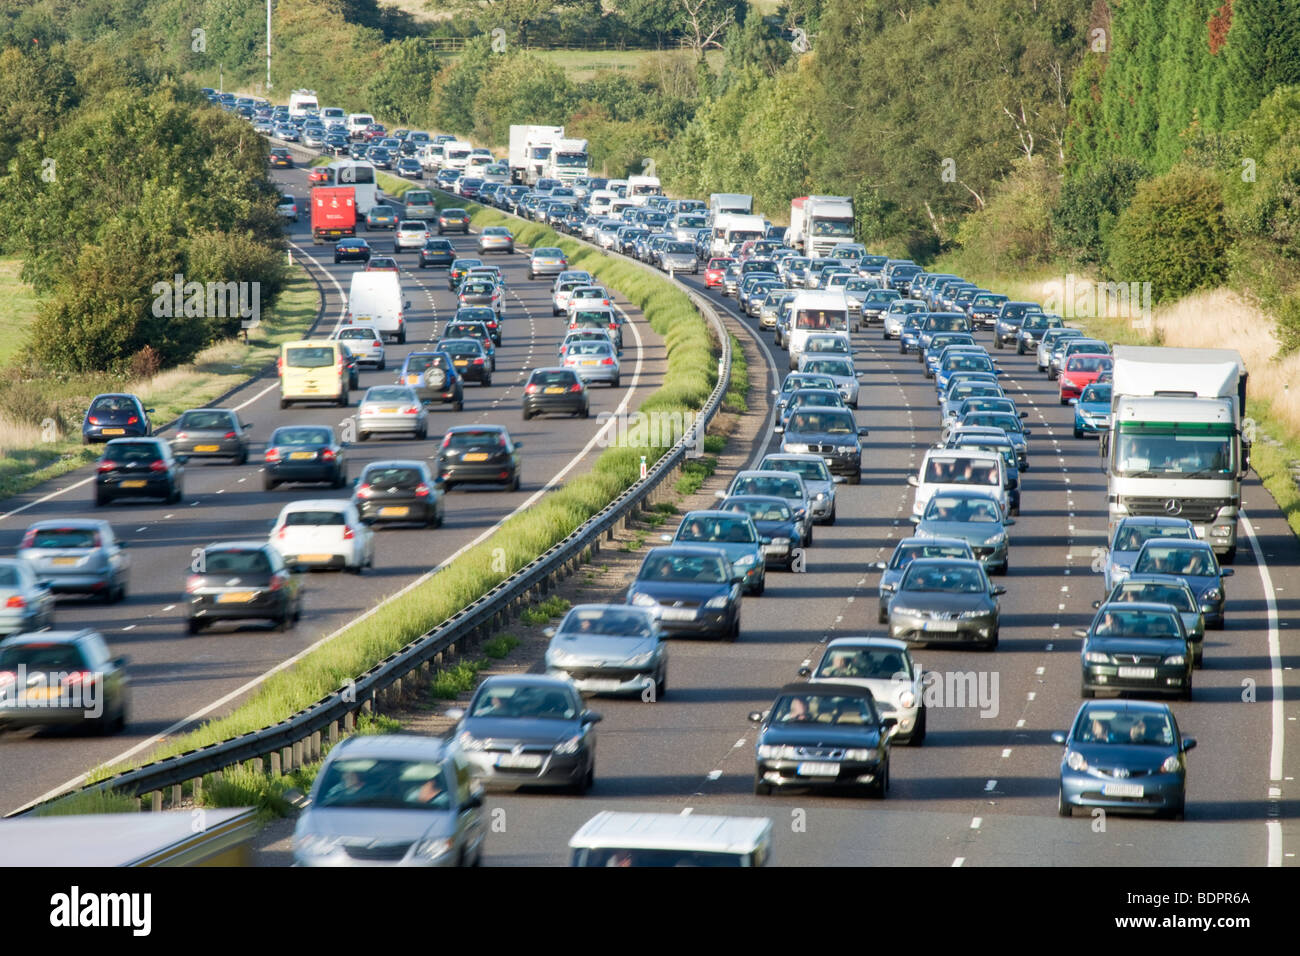 Traffic jam on dual carriageway. A3, Surrey, UK - Stock Image